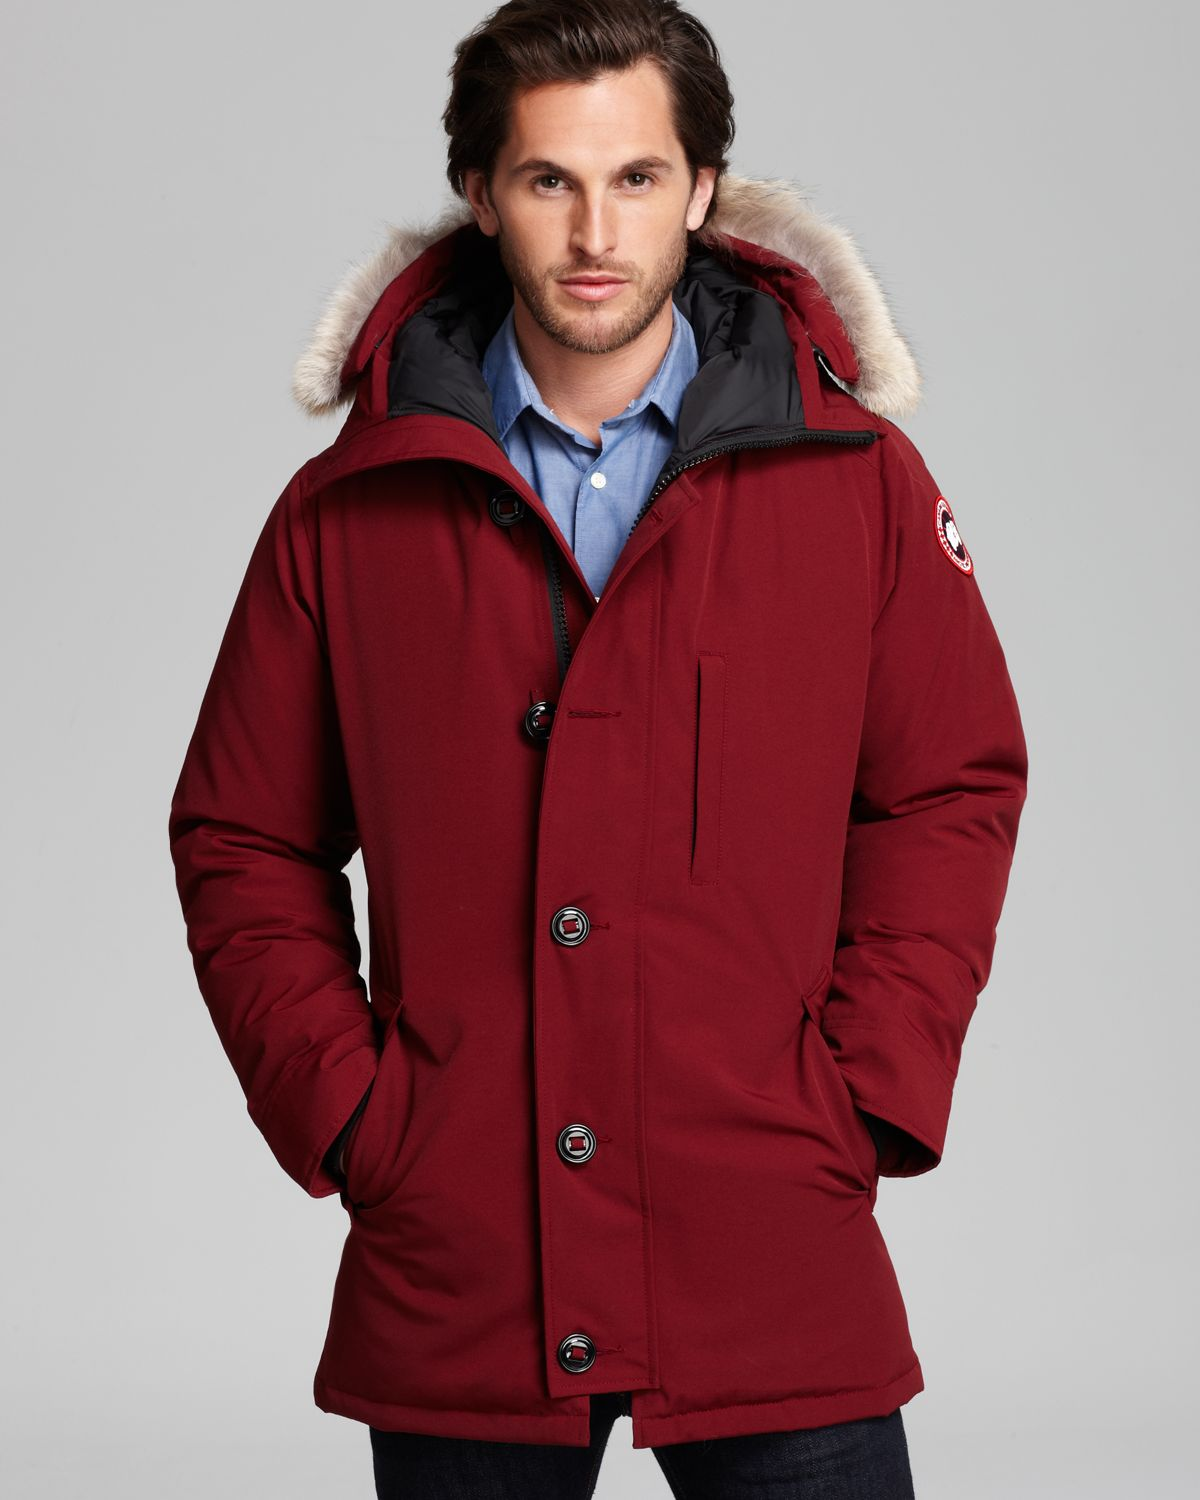 Canada Men S Sevens: Canada Goose Chateau Parka With Fur Hood In Red For Men